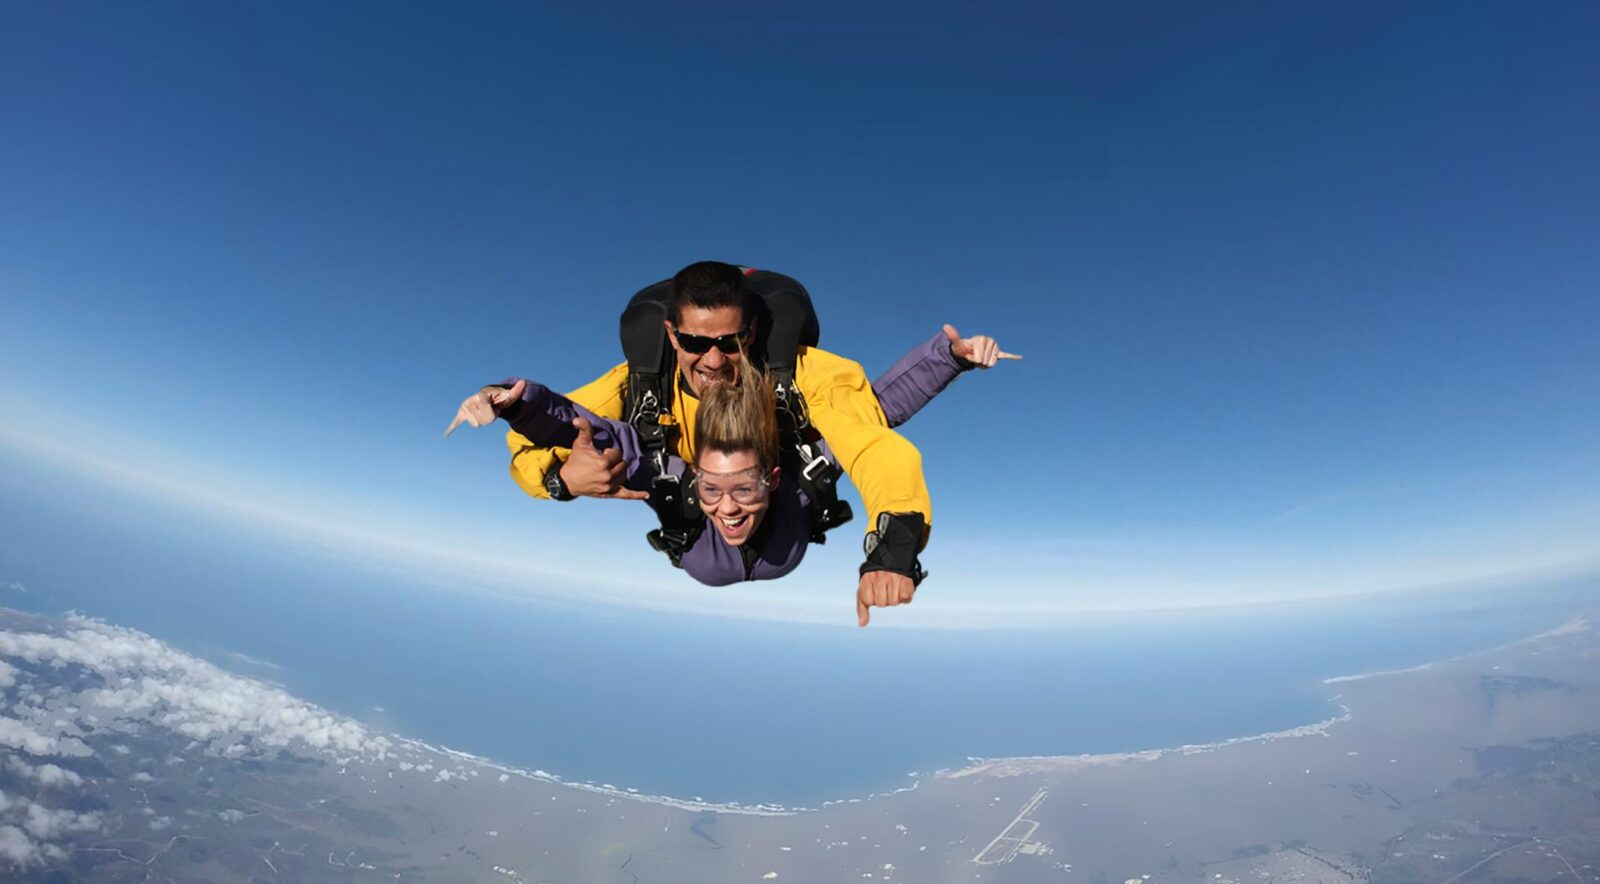 tandem skydiving at Skydive Santa Barbara